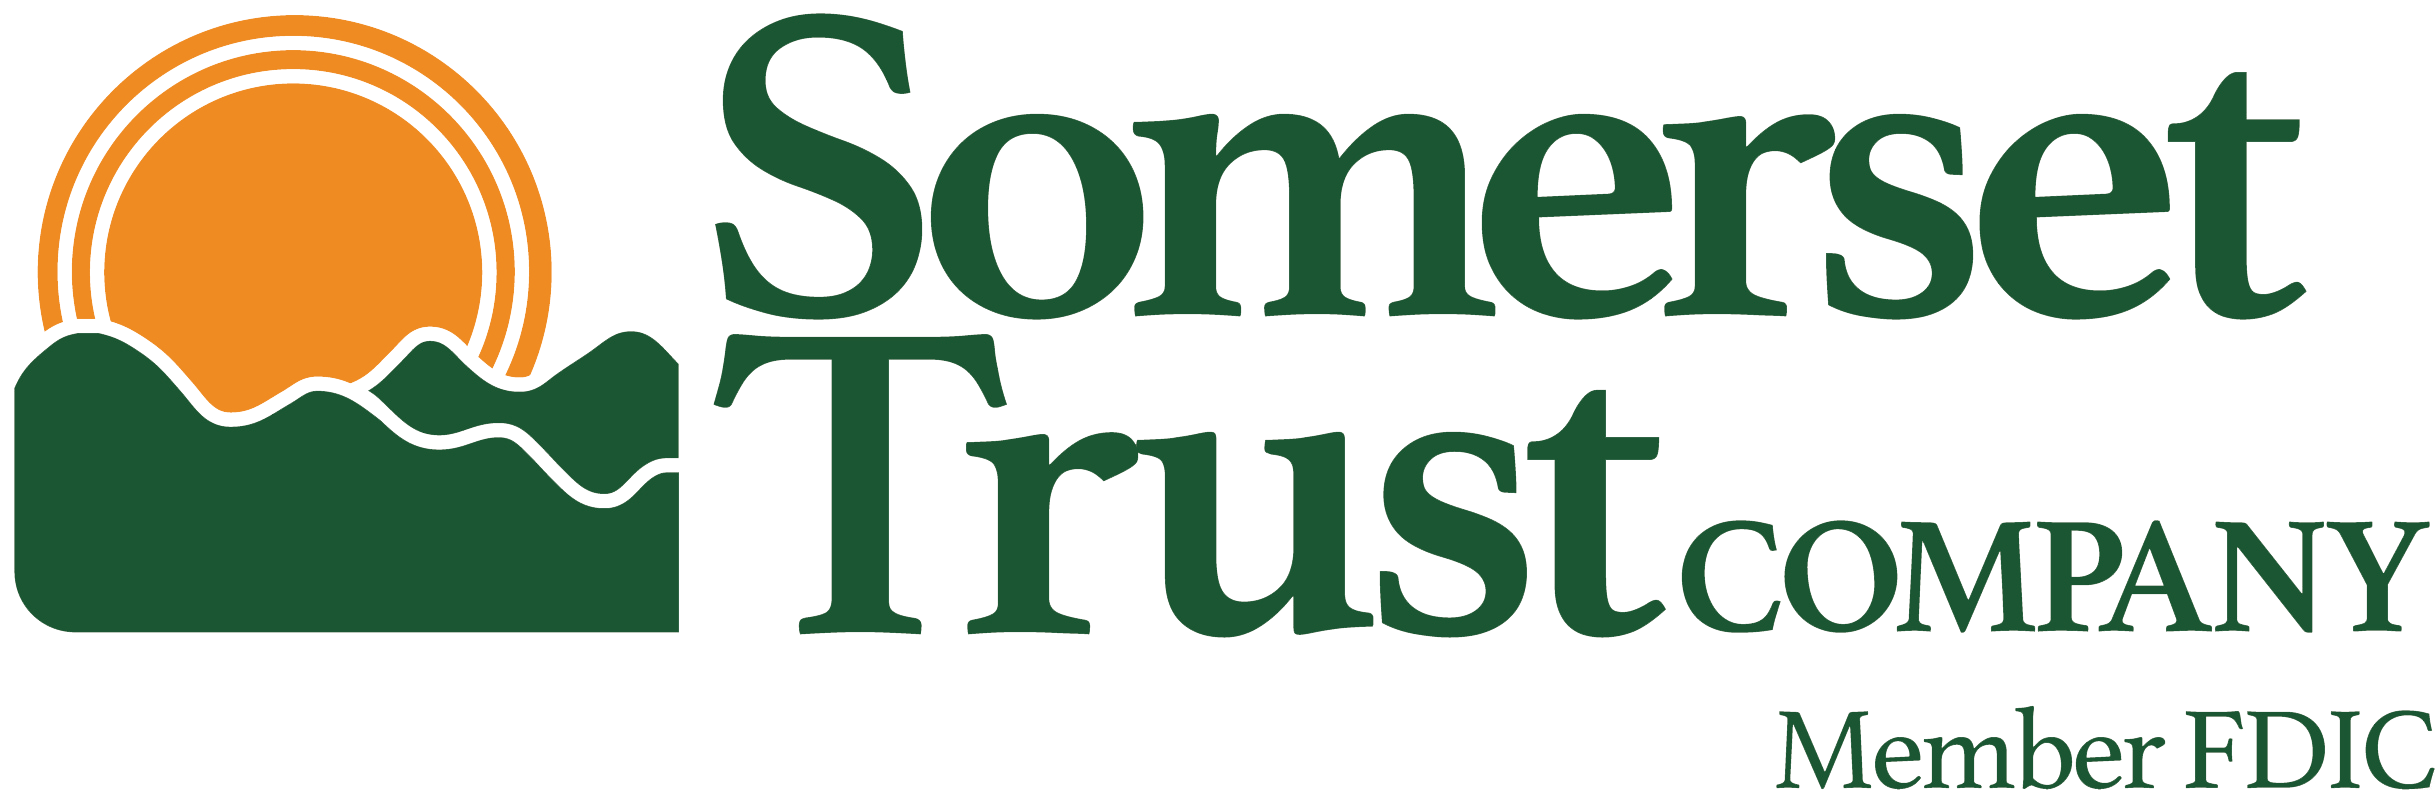 Somerset-Trust-Company-Logo-2018--Color